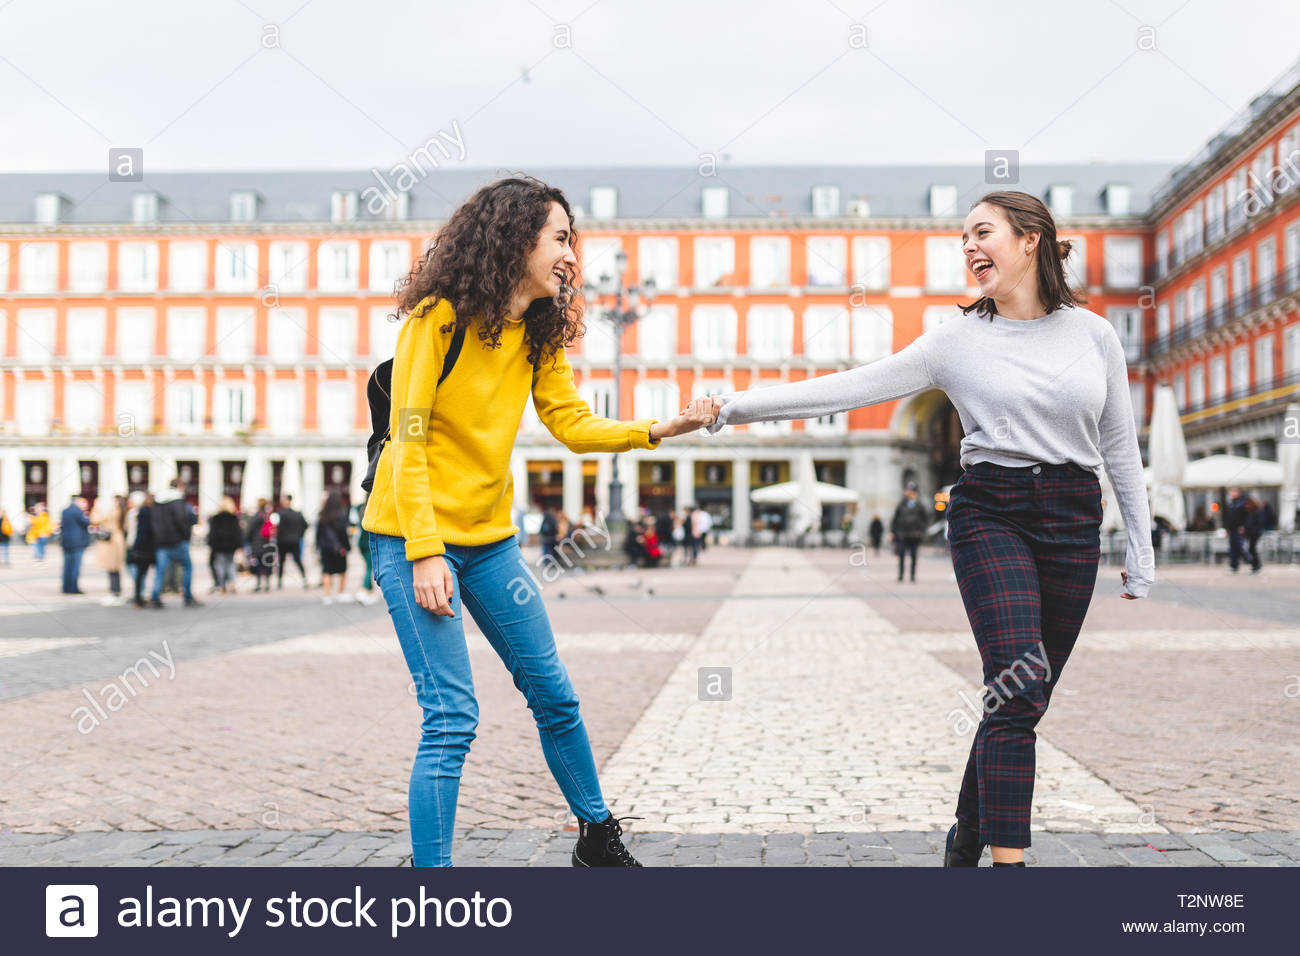 Girlfriends exploring city, Madrid, Spain - Stock Image